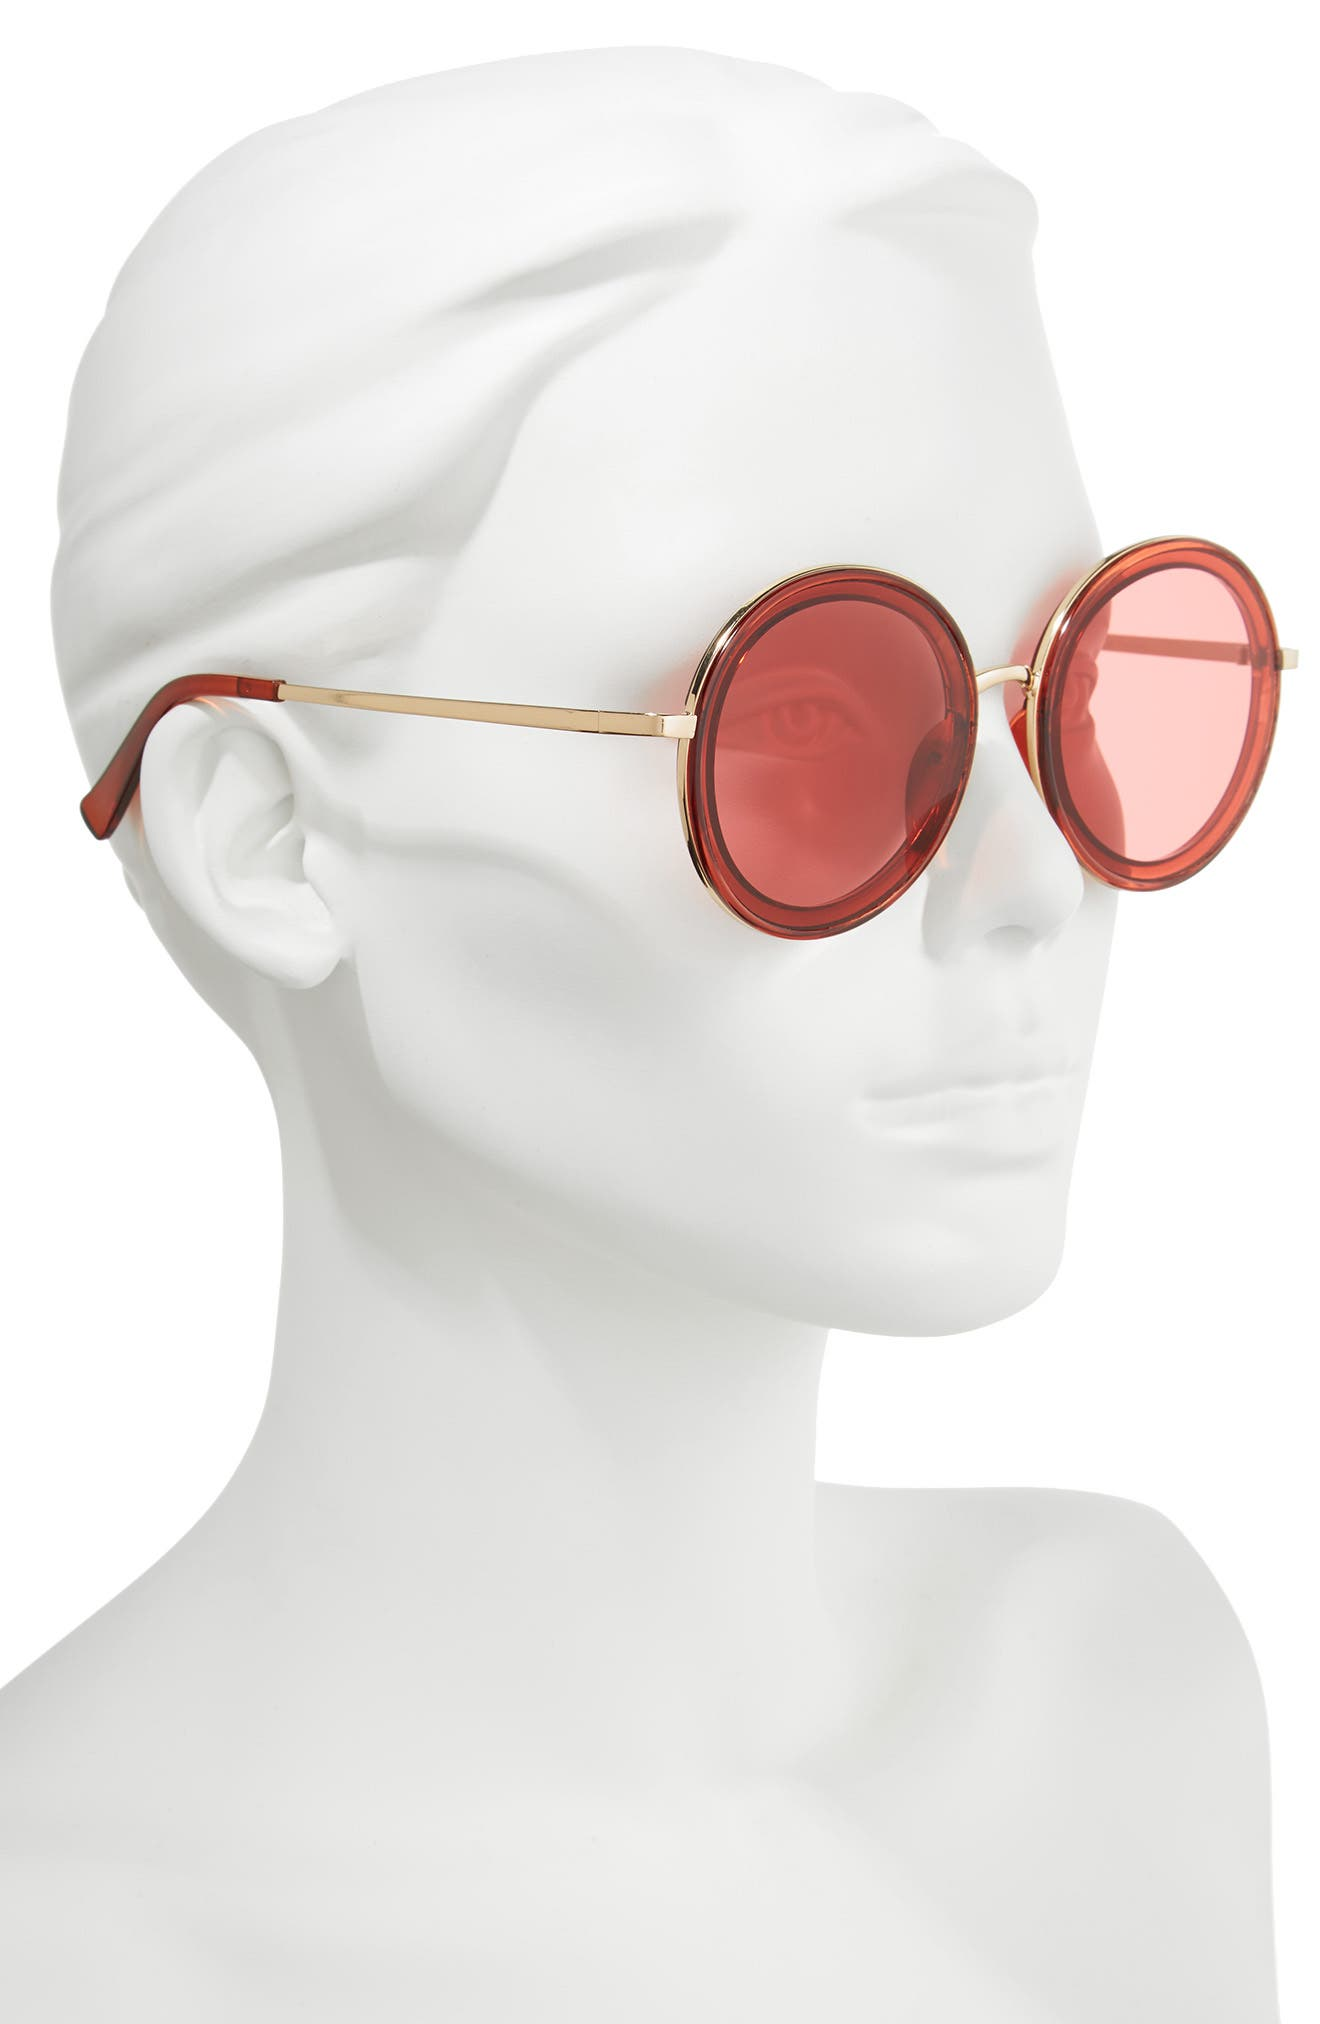 59mm Round Sunglasses,                             Alternate thumbnail 2, color,                             Pink